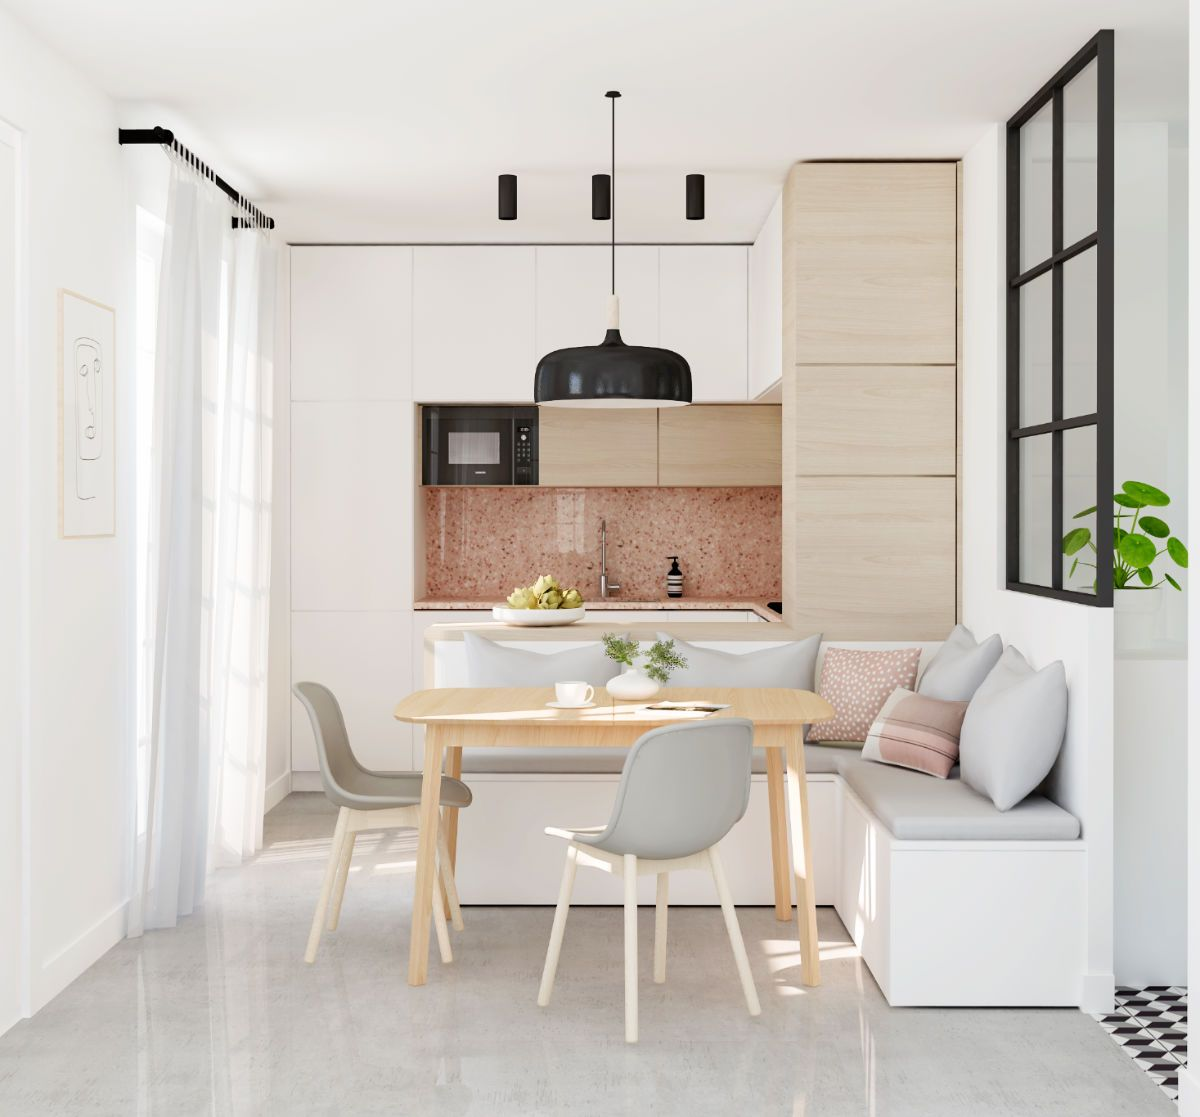 Http home designing pink kitchen also inspirational kitchens with tips  accessories to help you rh pinterest